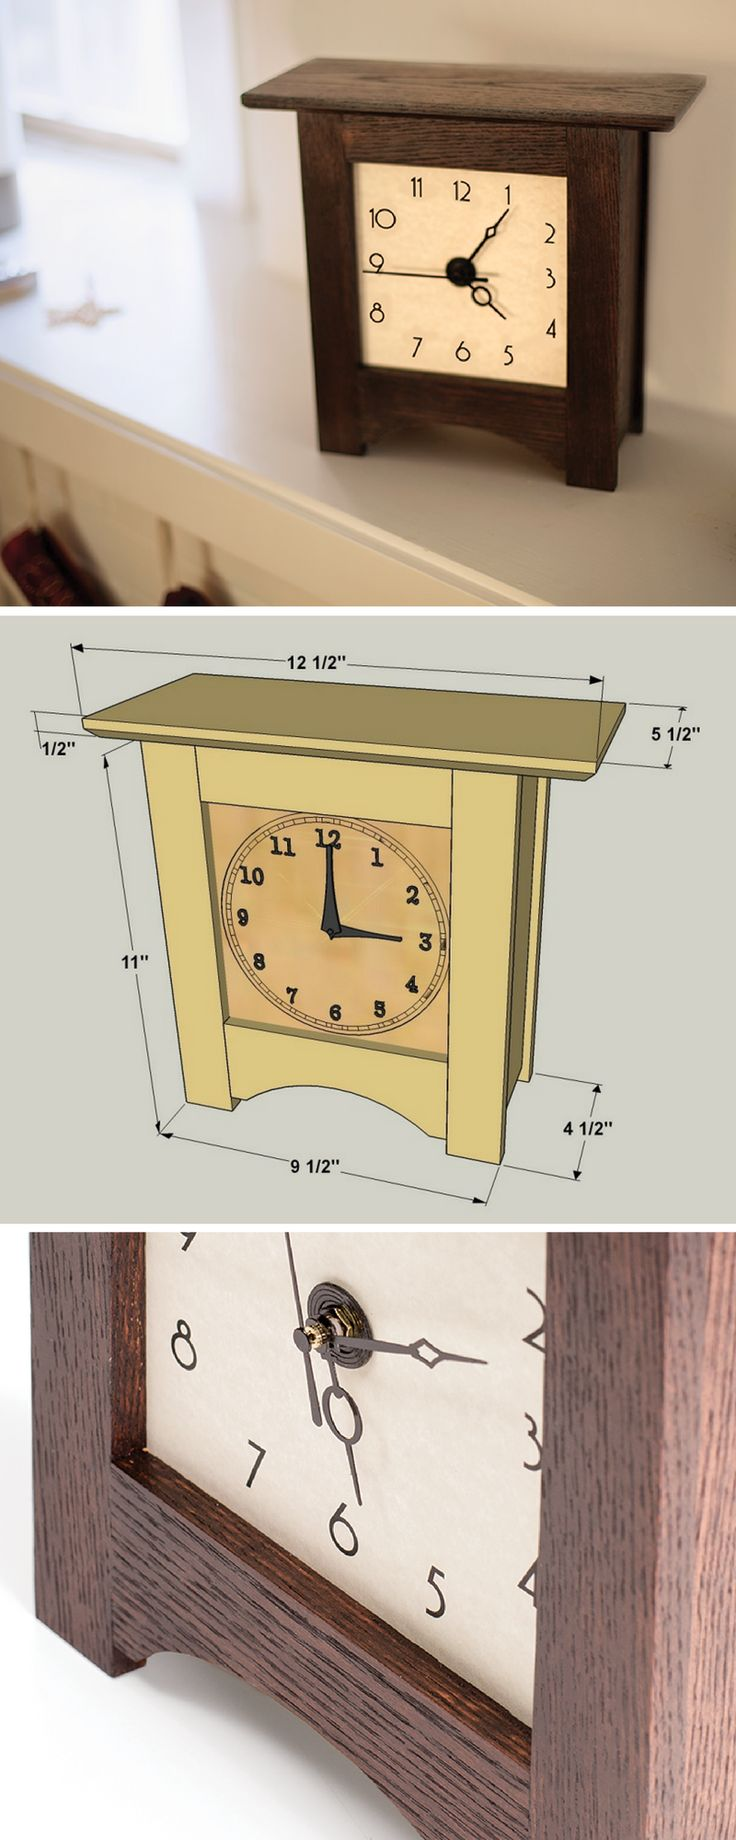 DIY Mantle Clock with Free Printable Dial